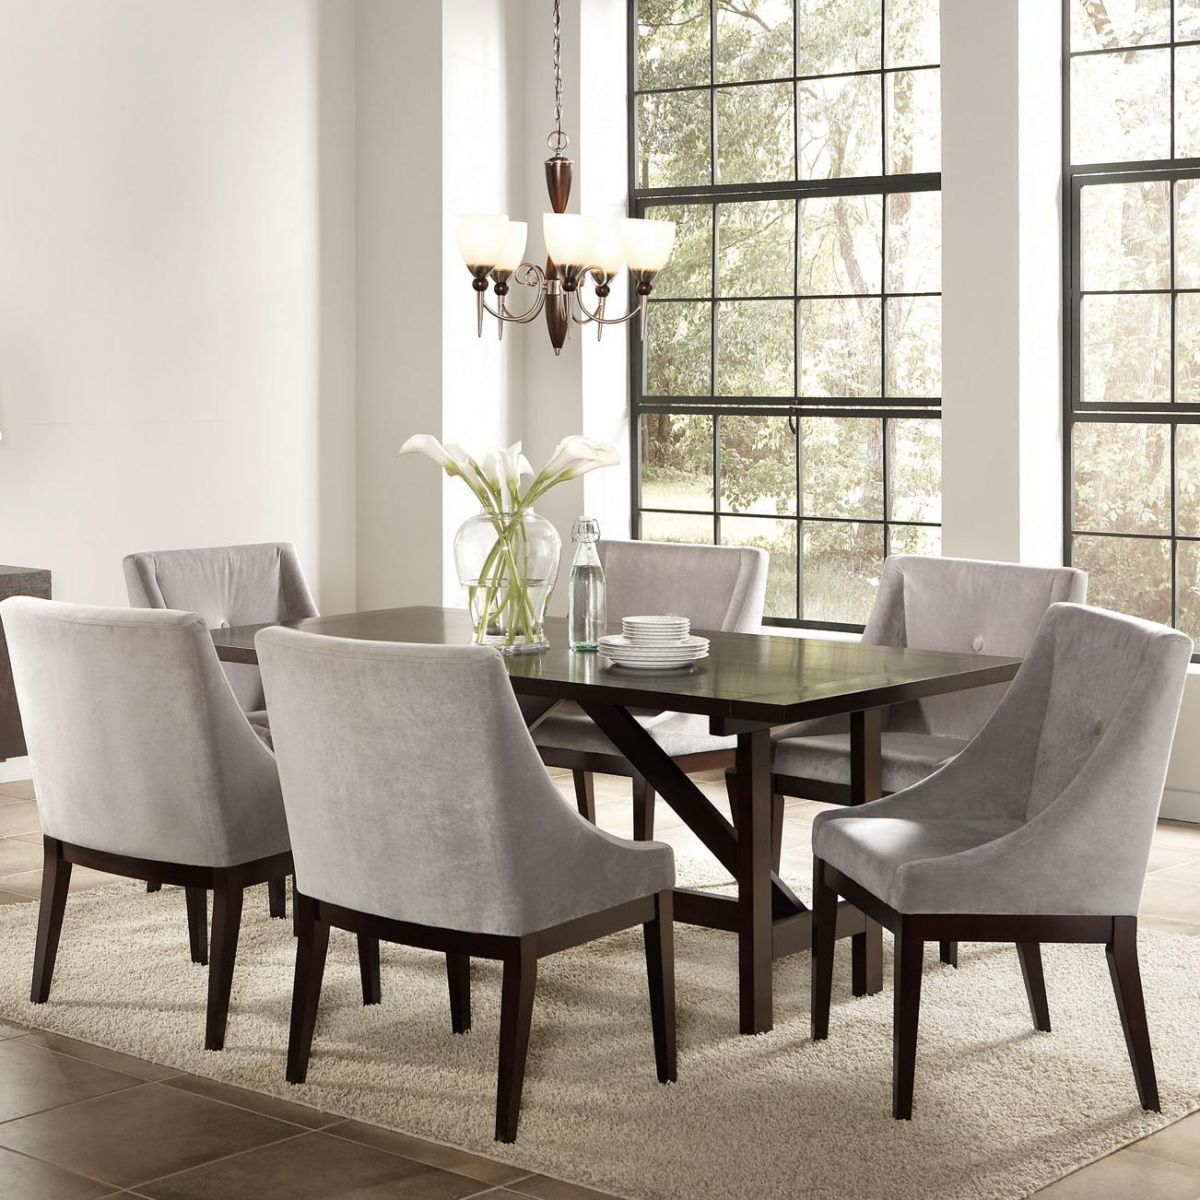 Coaster Dining Room Set Price Upon Request Call (631) 742-1351 for Best Price Guarantee Dinette Sets New York , Dinette Sets Long Island , Dining Room Sets New York , Dining Room Sets Long Island, Dining Room Chairs Long Island Complete the dining space in